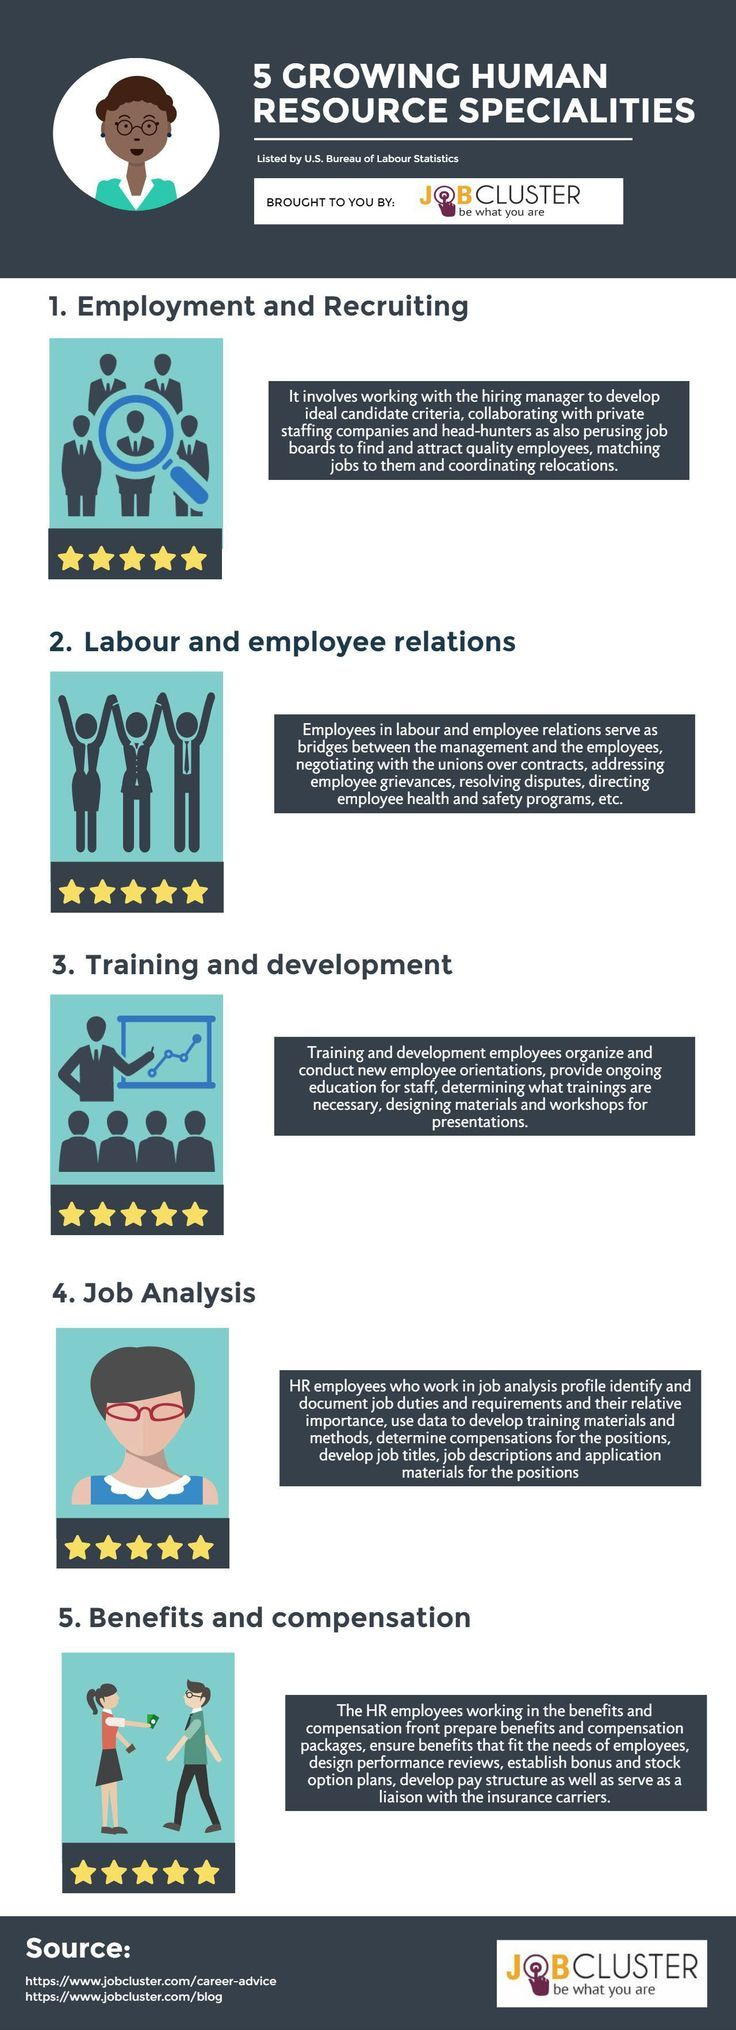 8 best phr sphr exam images on pinterest career development five growing humanresources specialties listed by us bureau of labour statistics infographic xflitez Images